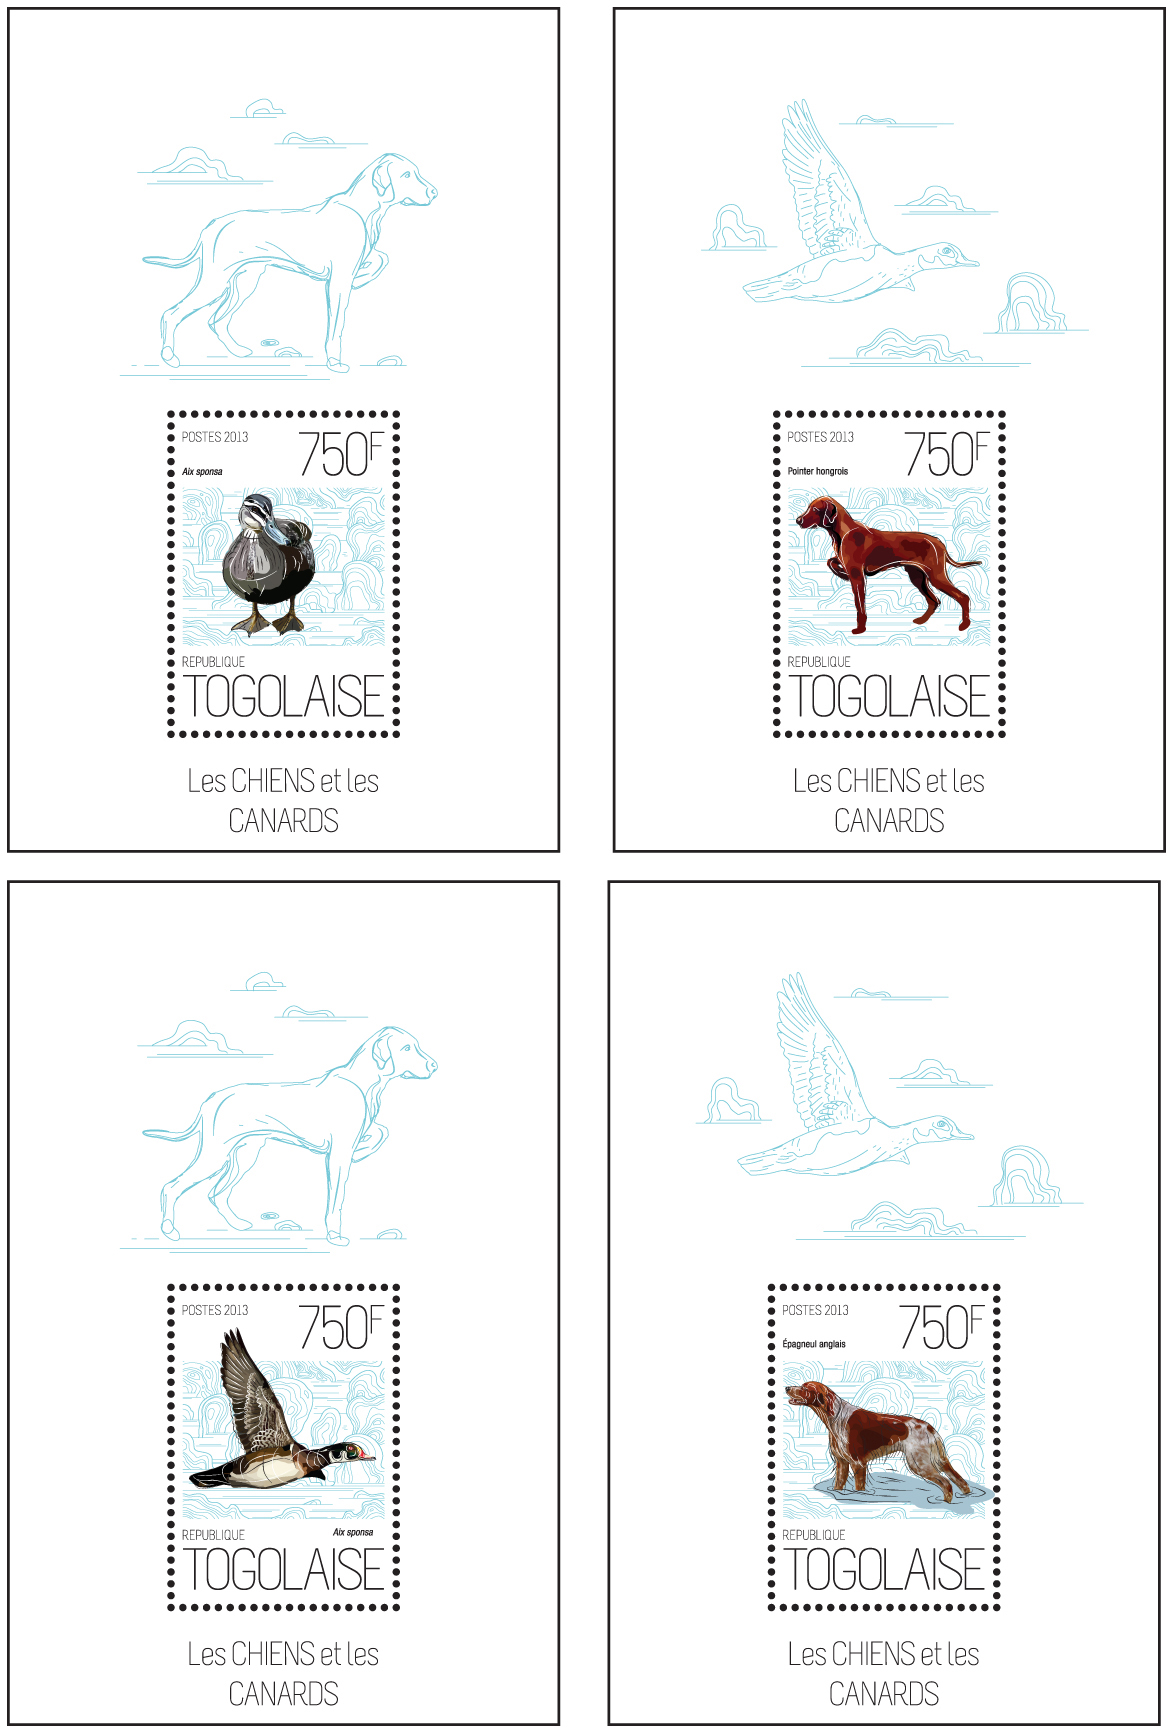 Dogs and ducks - Issue of Togo postage stamps